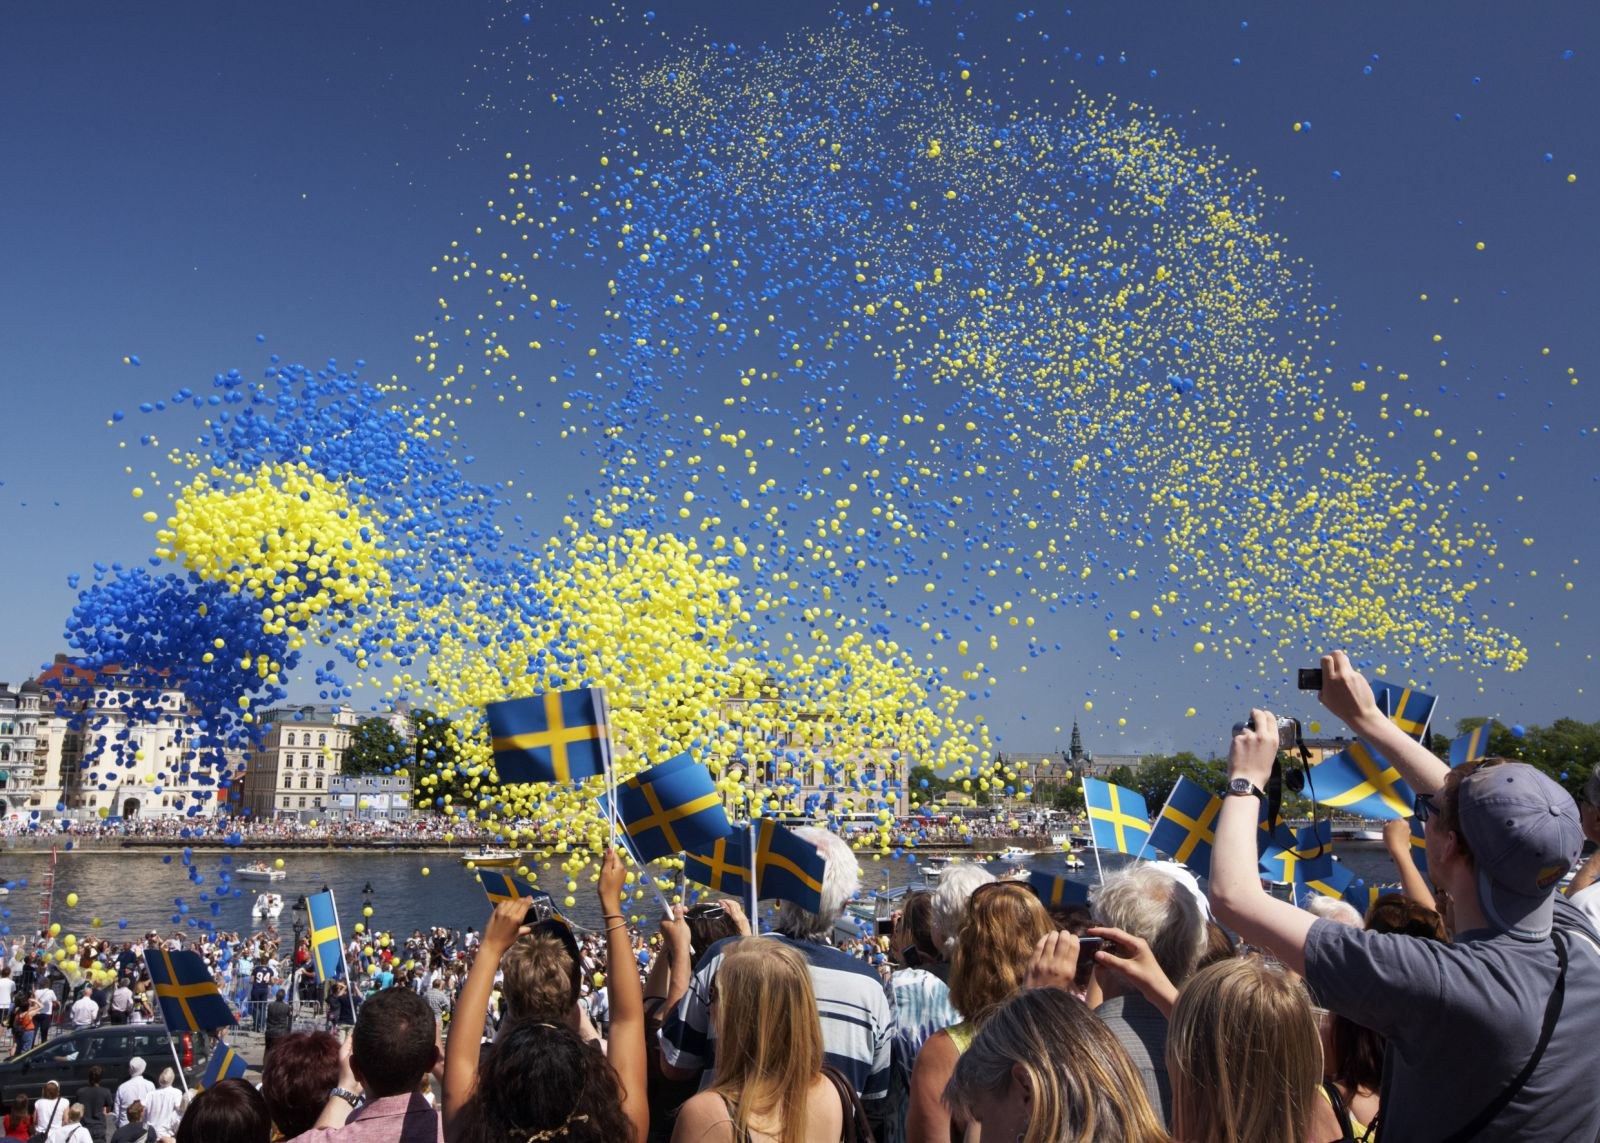 National Day in Sweden